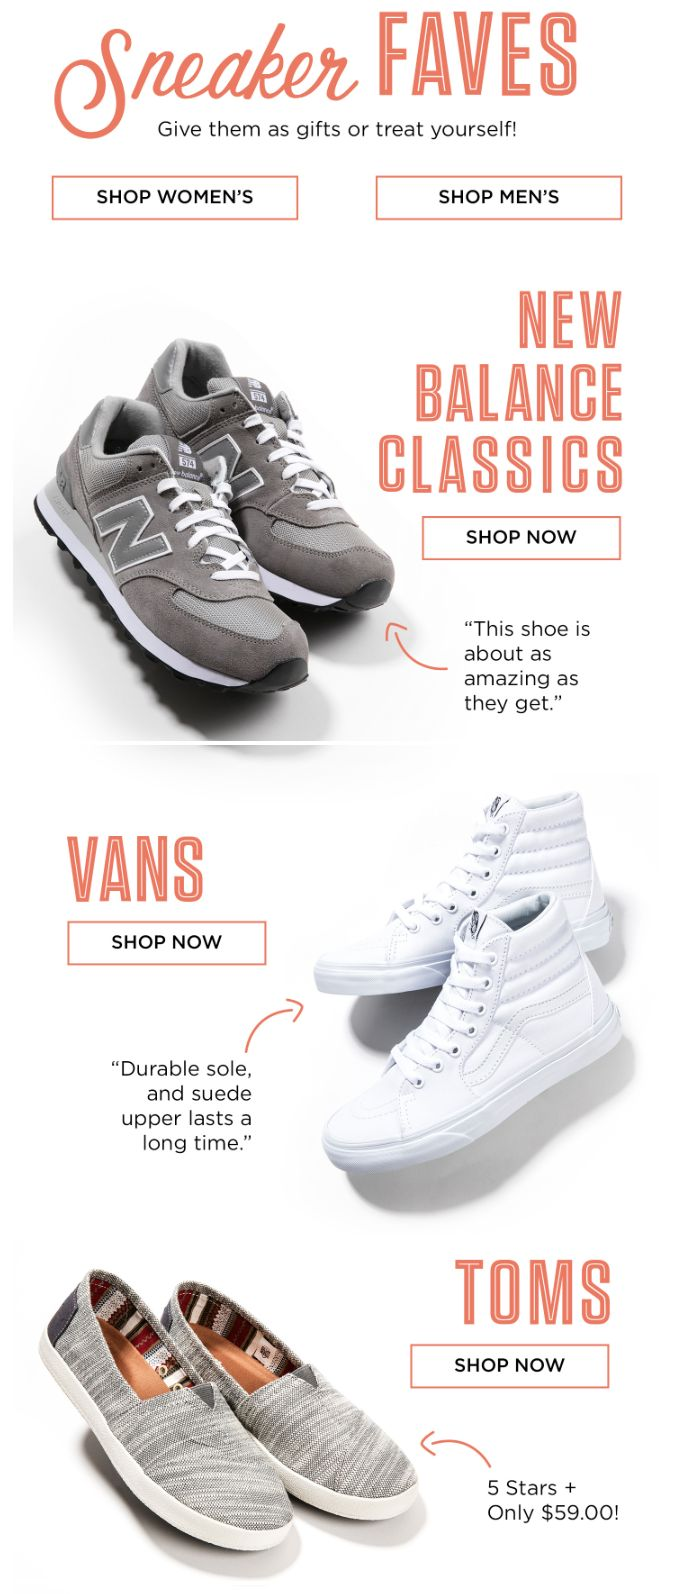 """11.3 zappos """"sneakers as gifts"""" subject line. intro message """"Why not! We're fully stocked on the season's best sneakers! XOXO, Zappos.com"""""""